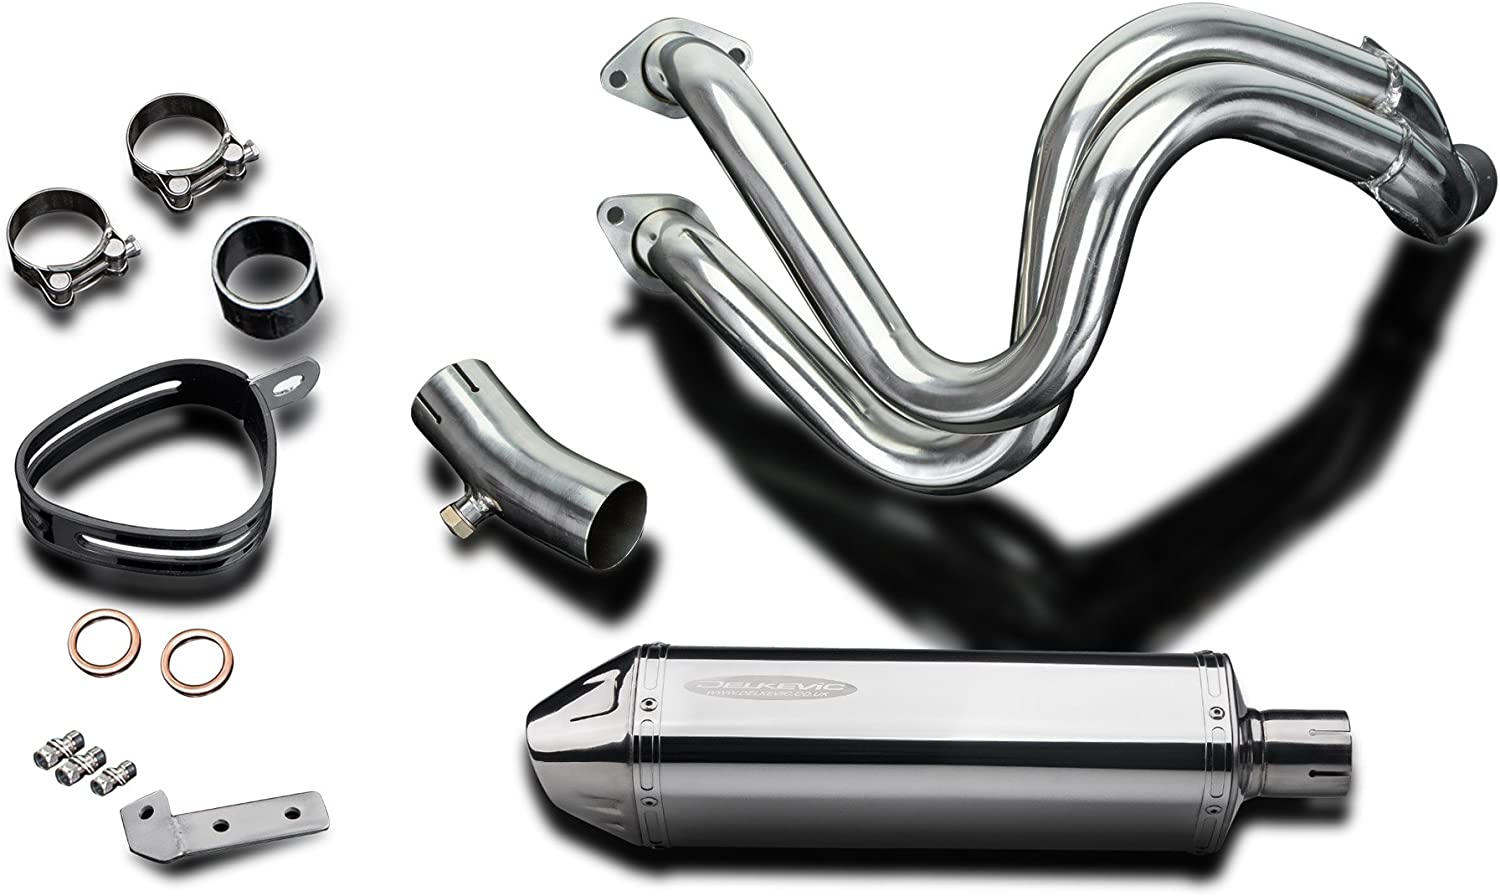 Delkevic Full 2-1 Exhaust compatible with Kawasaki Versys 650 KLE650 Stubby 13 Stainless Steel Tri-Oval Muffler Exhaust 15-20